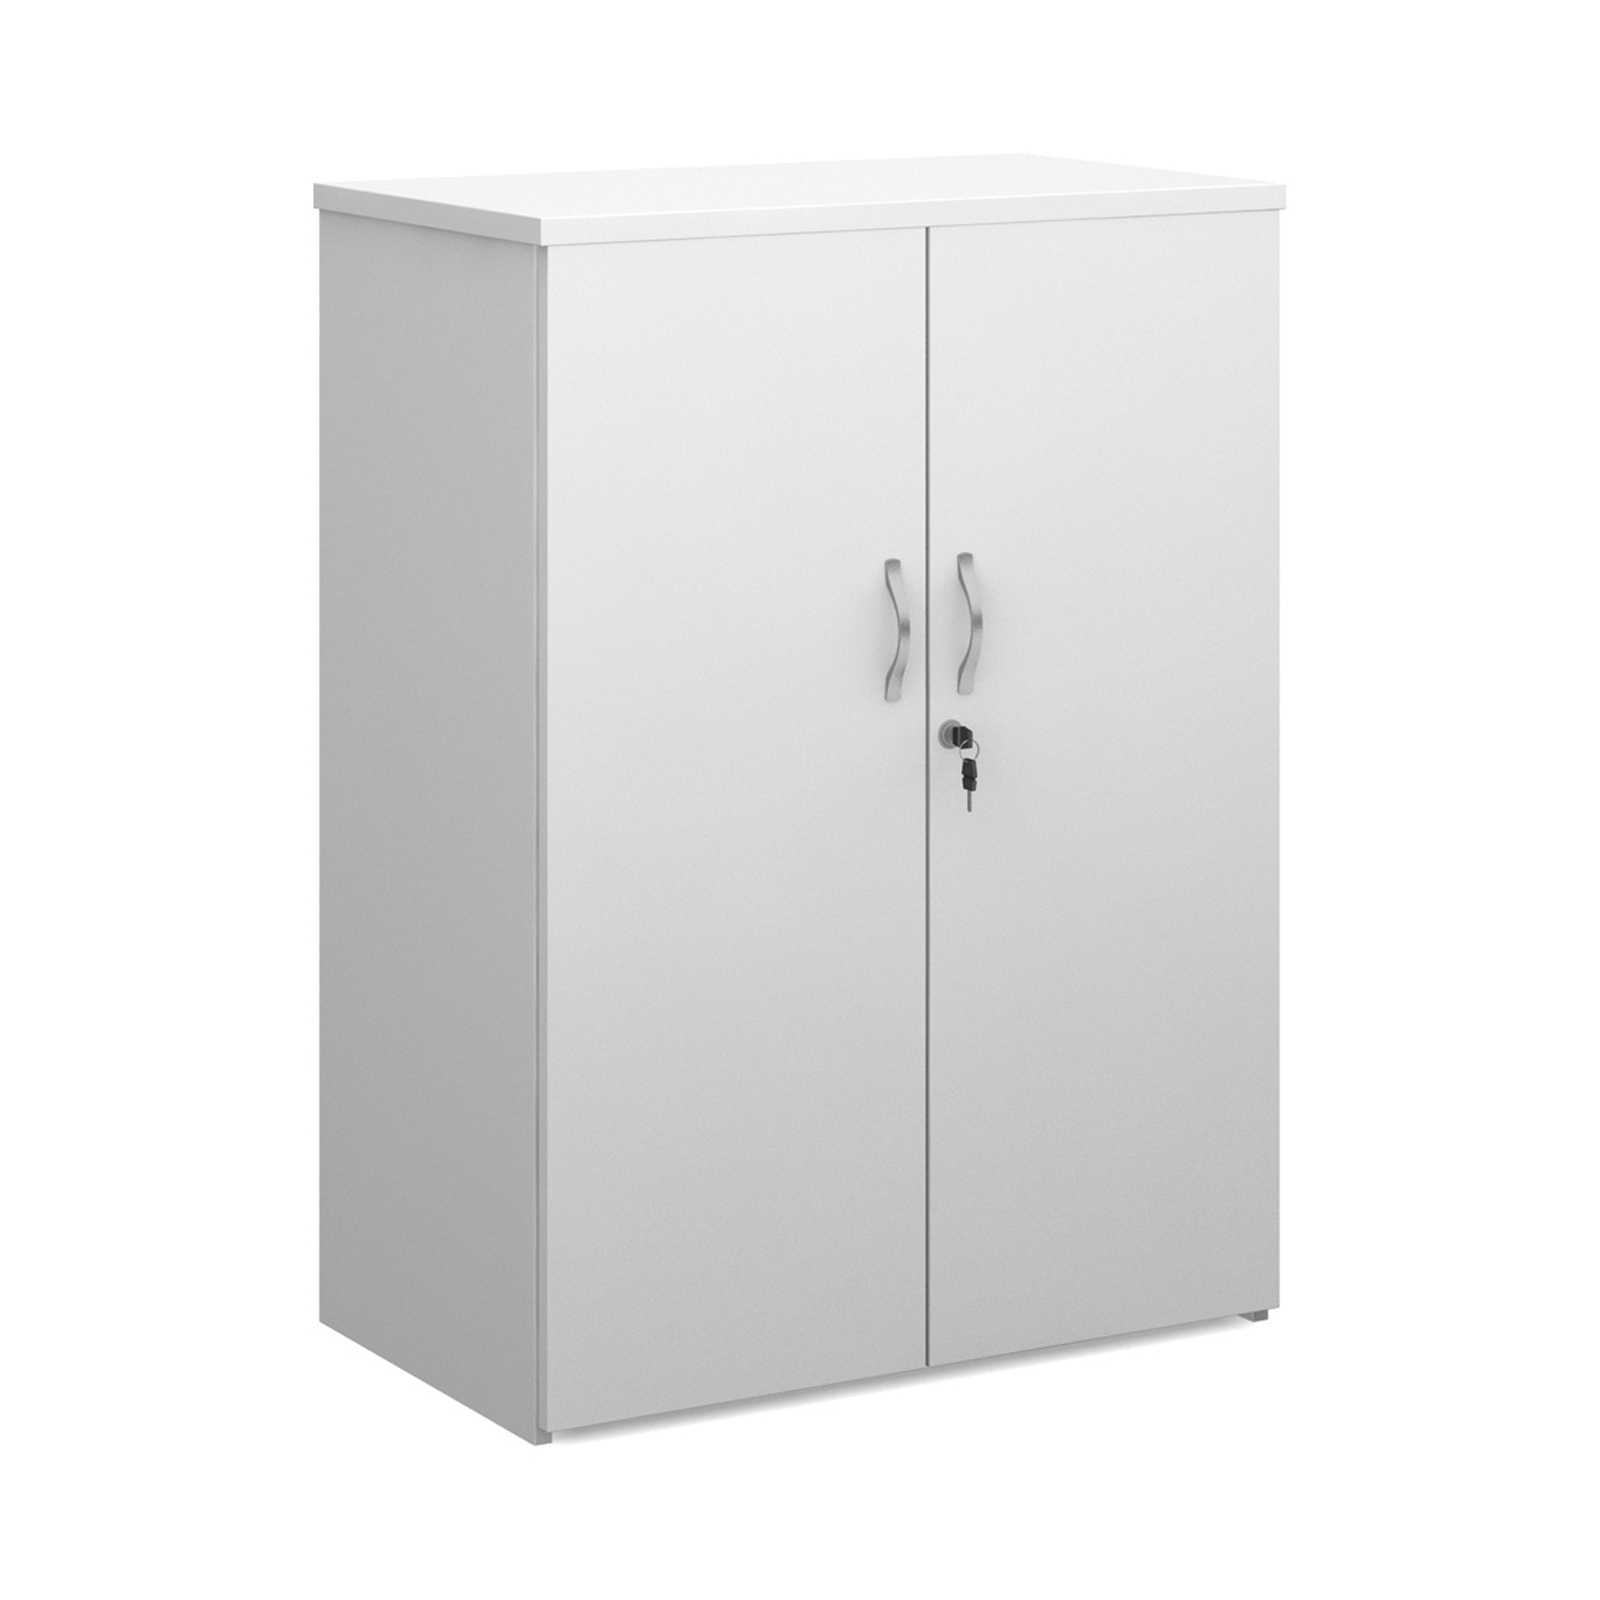 Up to 1200mm High Universal double door cupboard 1090mm high with 2 shelves - white